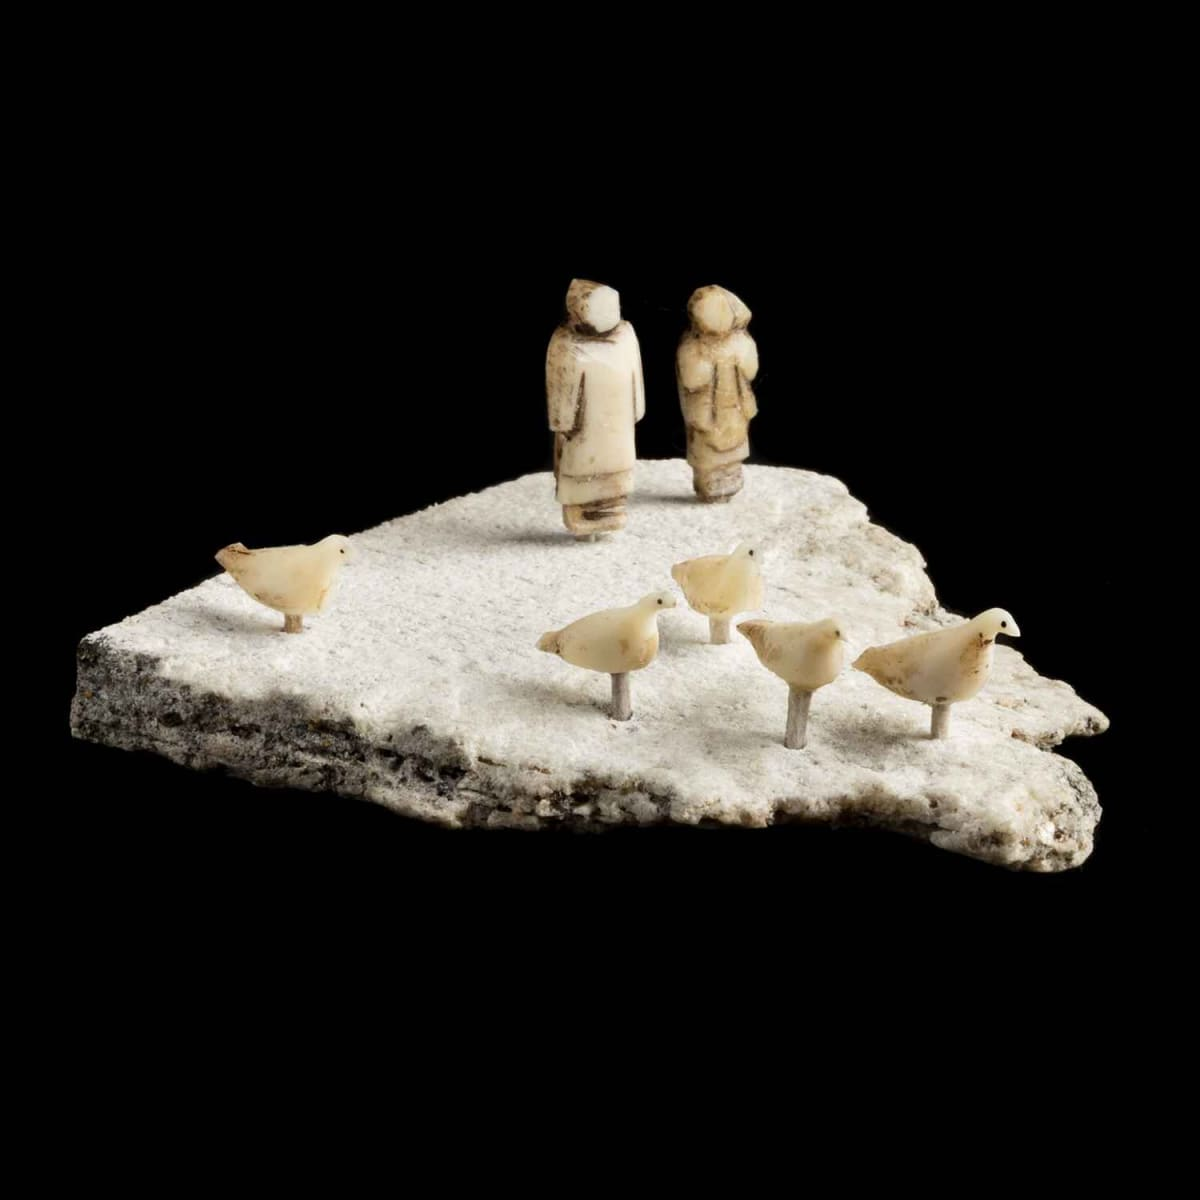 21. UNIDENTIFIED ARTIST, ARCTIC BAY Scene with Man, Woman, and Five Birds, c. late 1960s